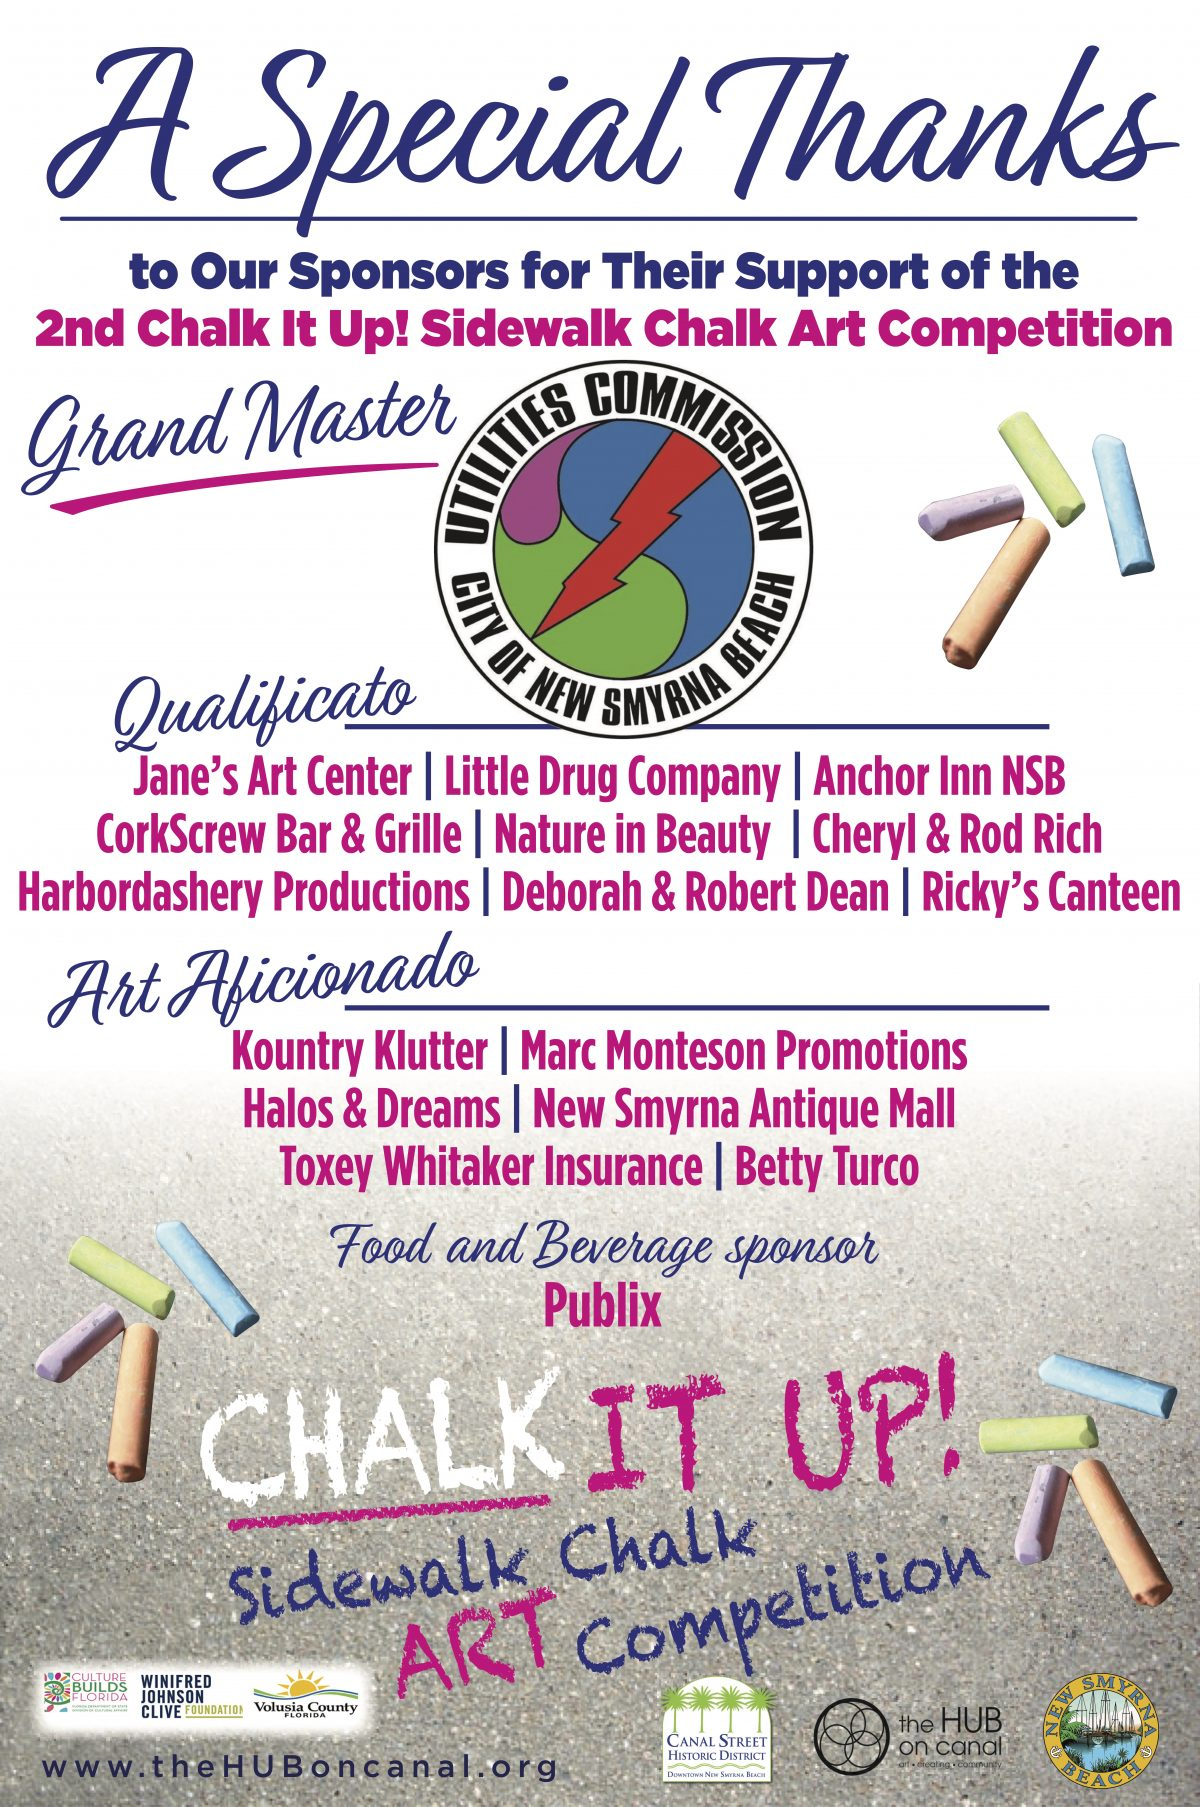 Announcing the Winners for the 2nd Annual Chalk It Up! Sidewalk Chalk Art Competition in New Smyrna Beach